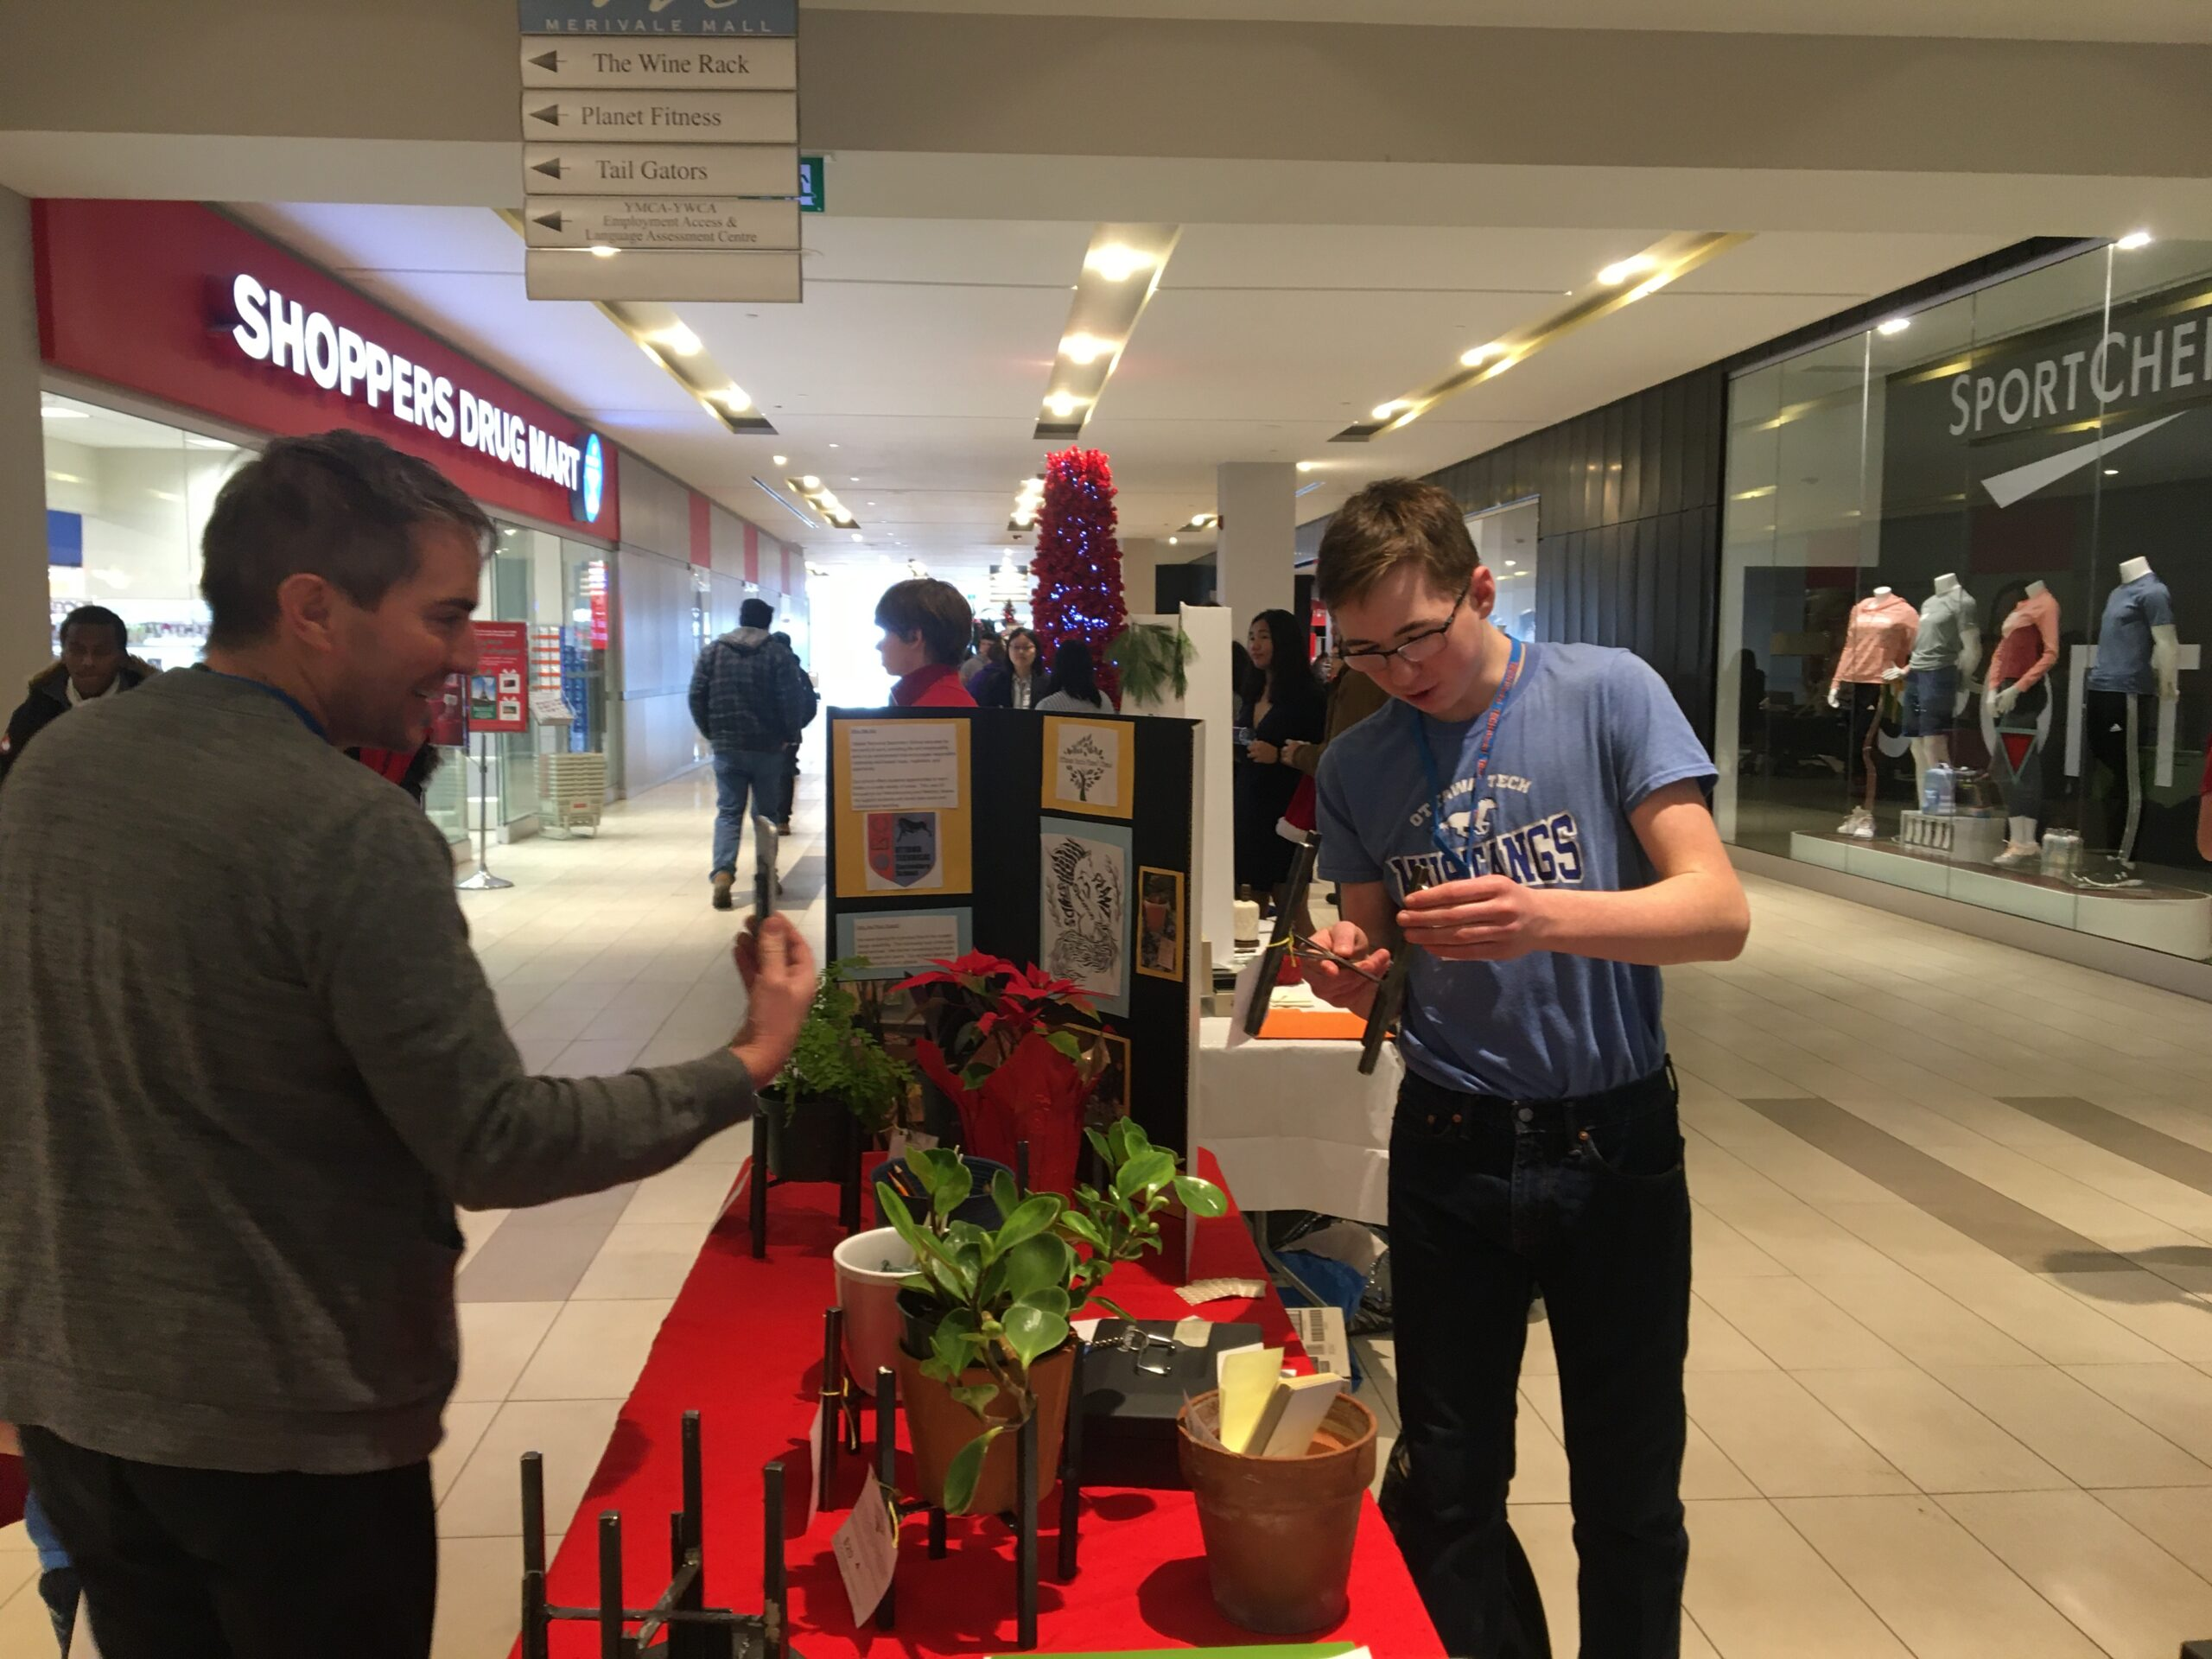 A student sells a plant stand to a customer in a mall